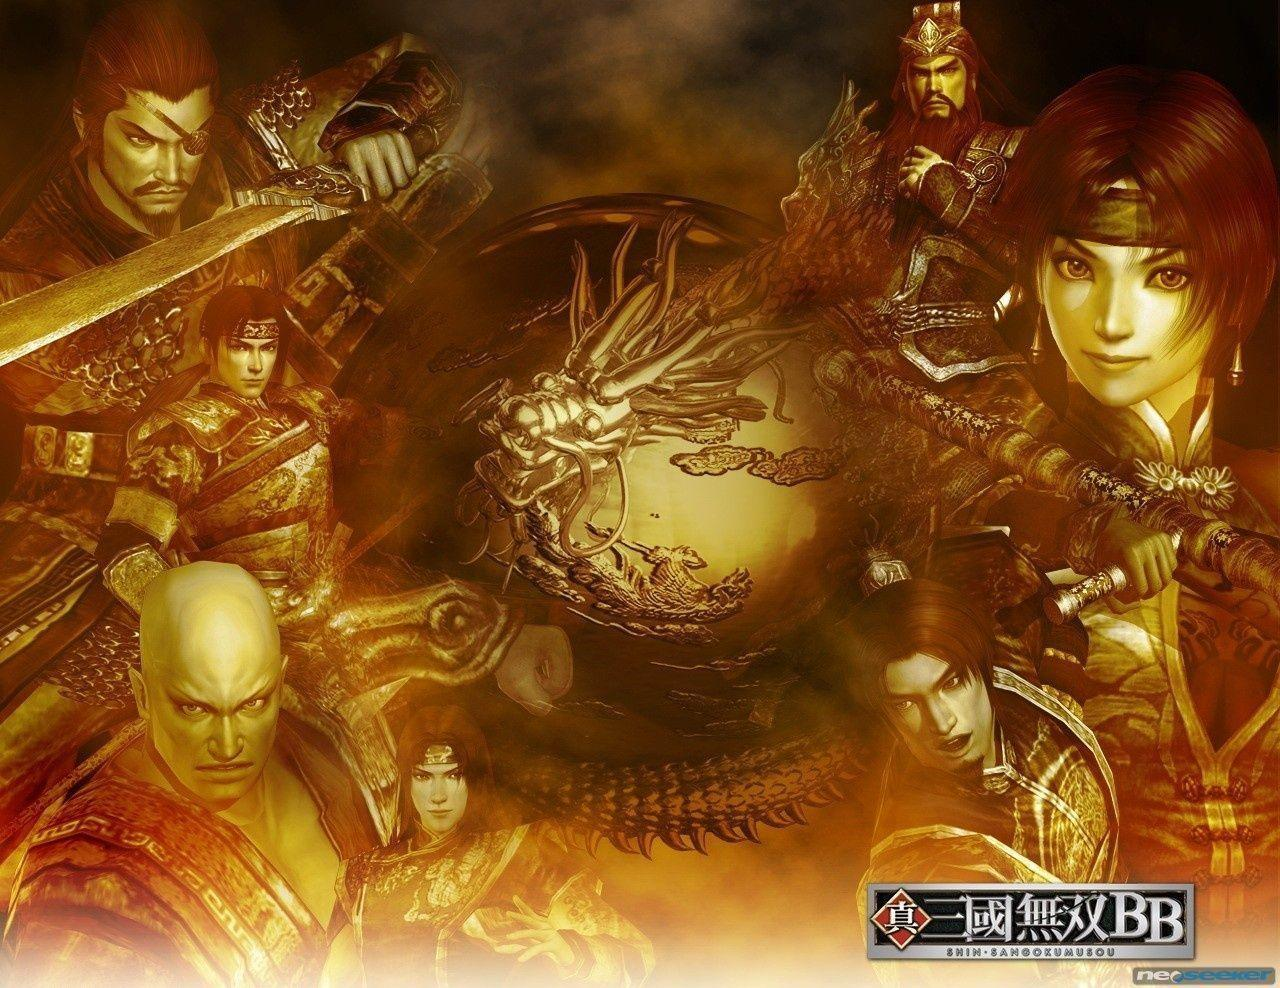 Dynasty Warriors Wallpapers - Wallpaper Cave